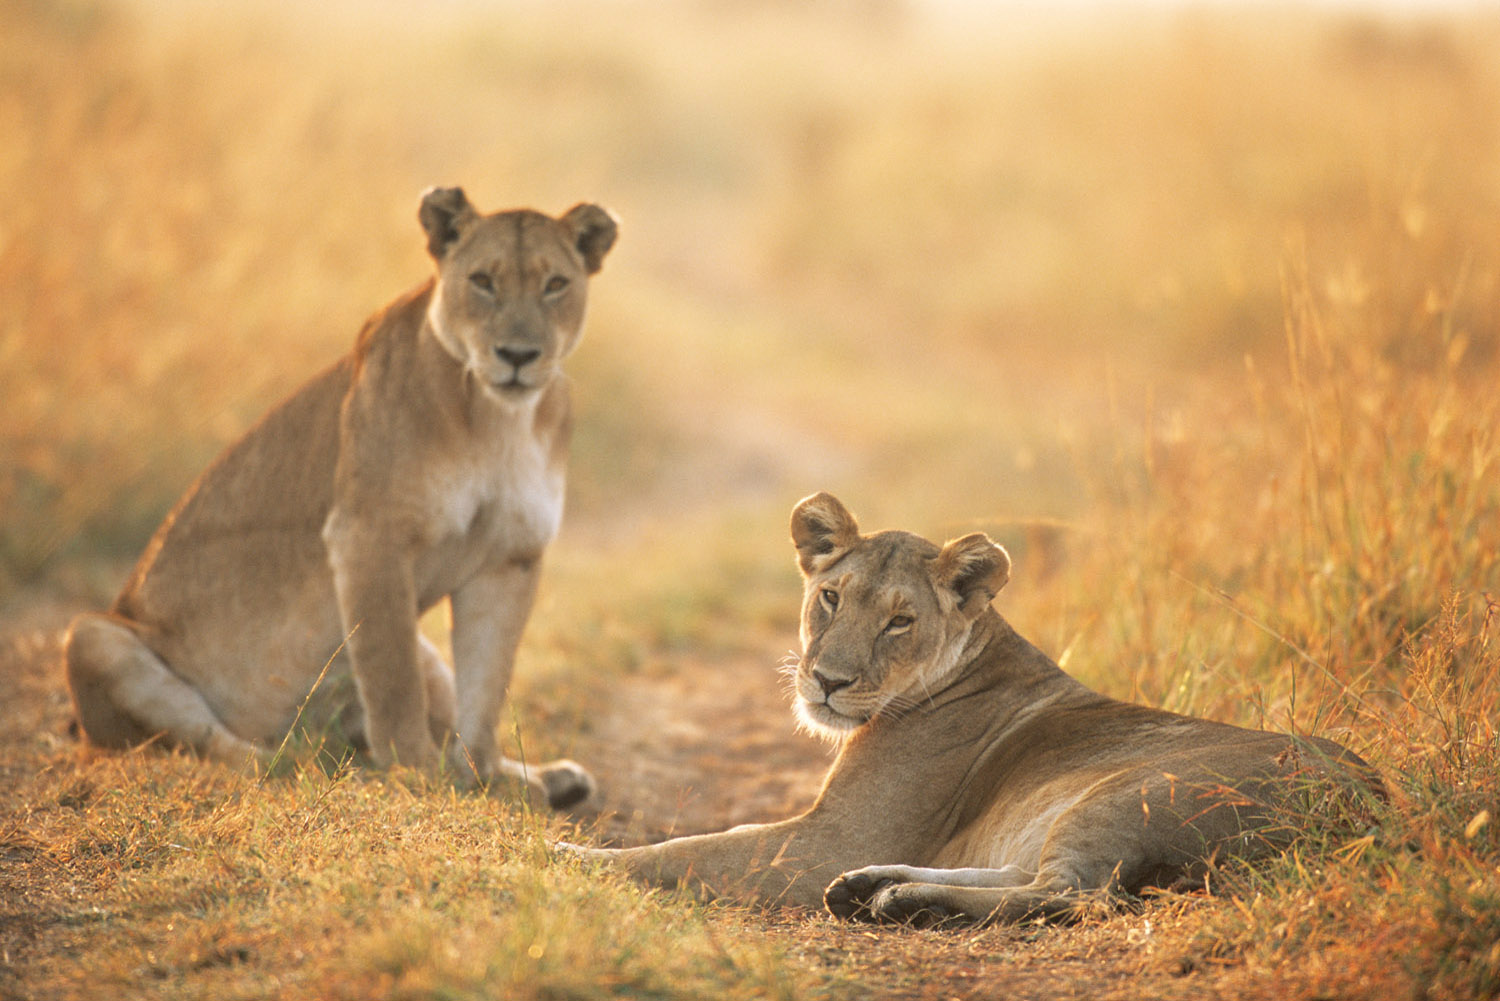 Lionesses at dawn, Masai Mara National Reserve, Kenya